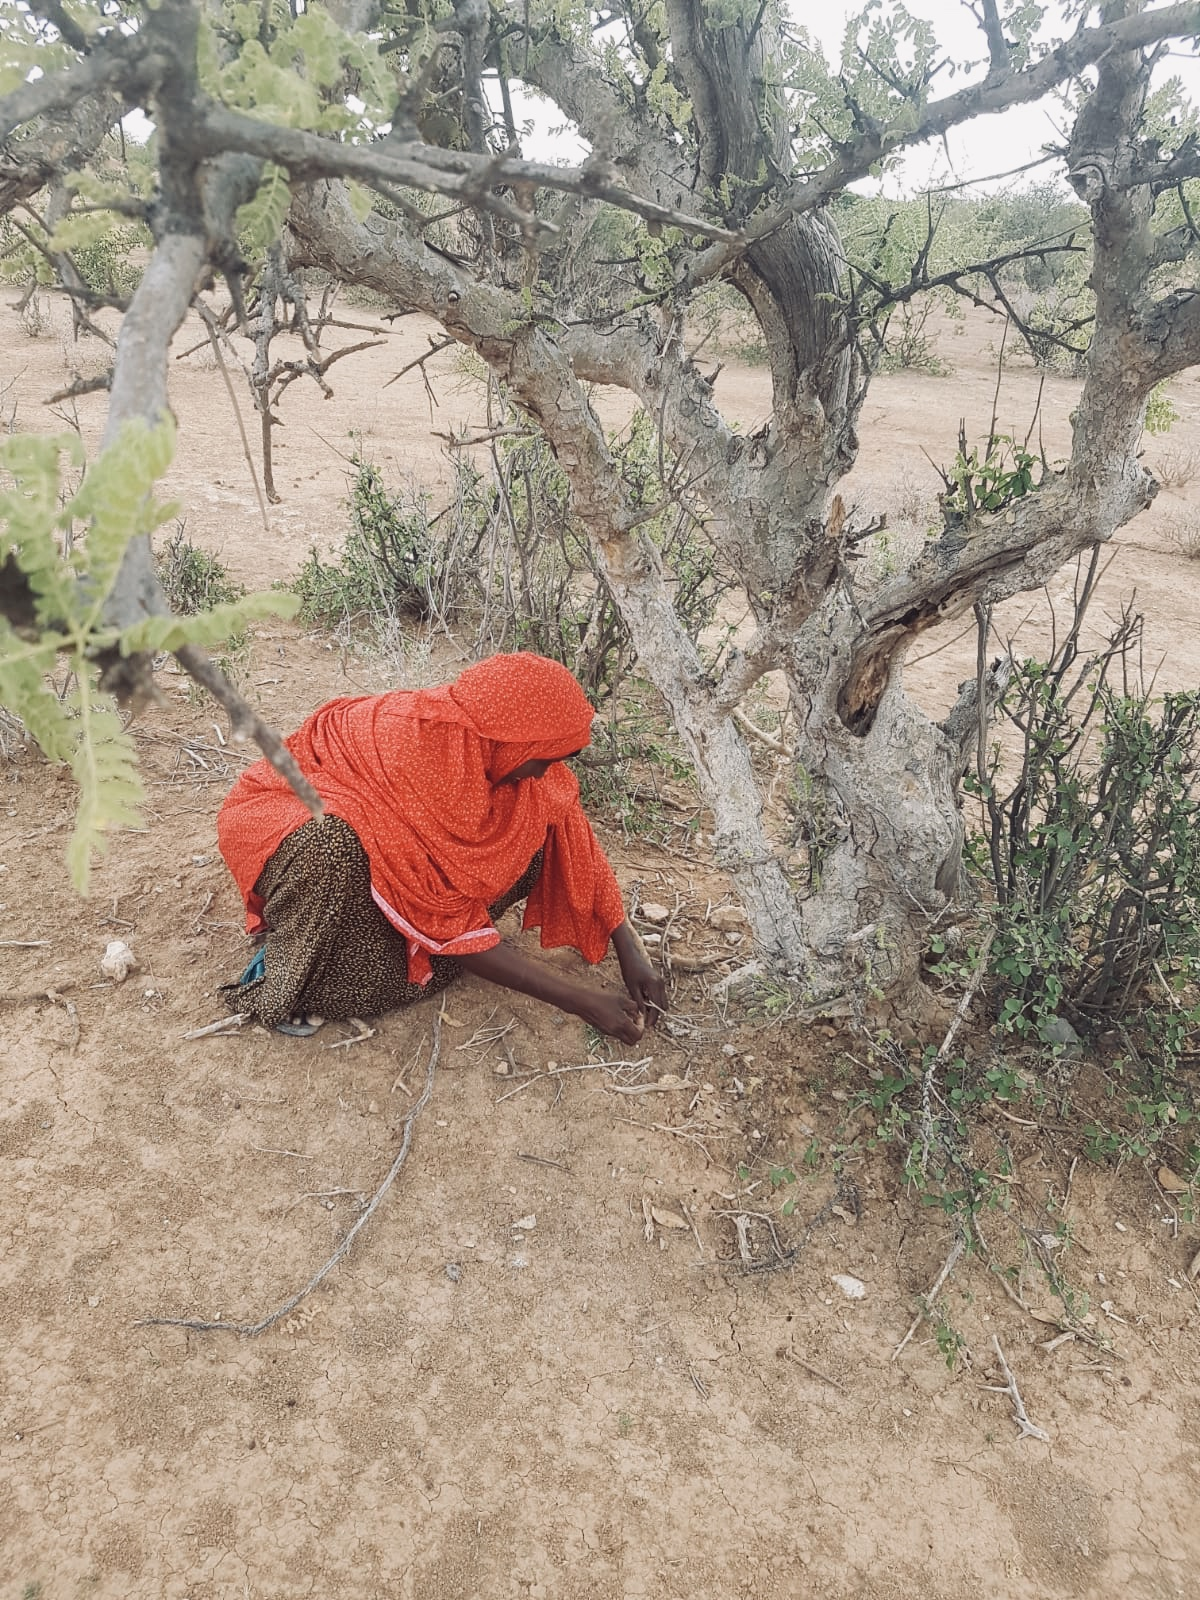 Amina collecting Frankincense resin from the ground